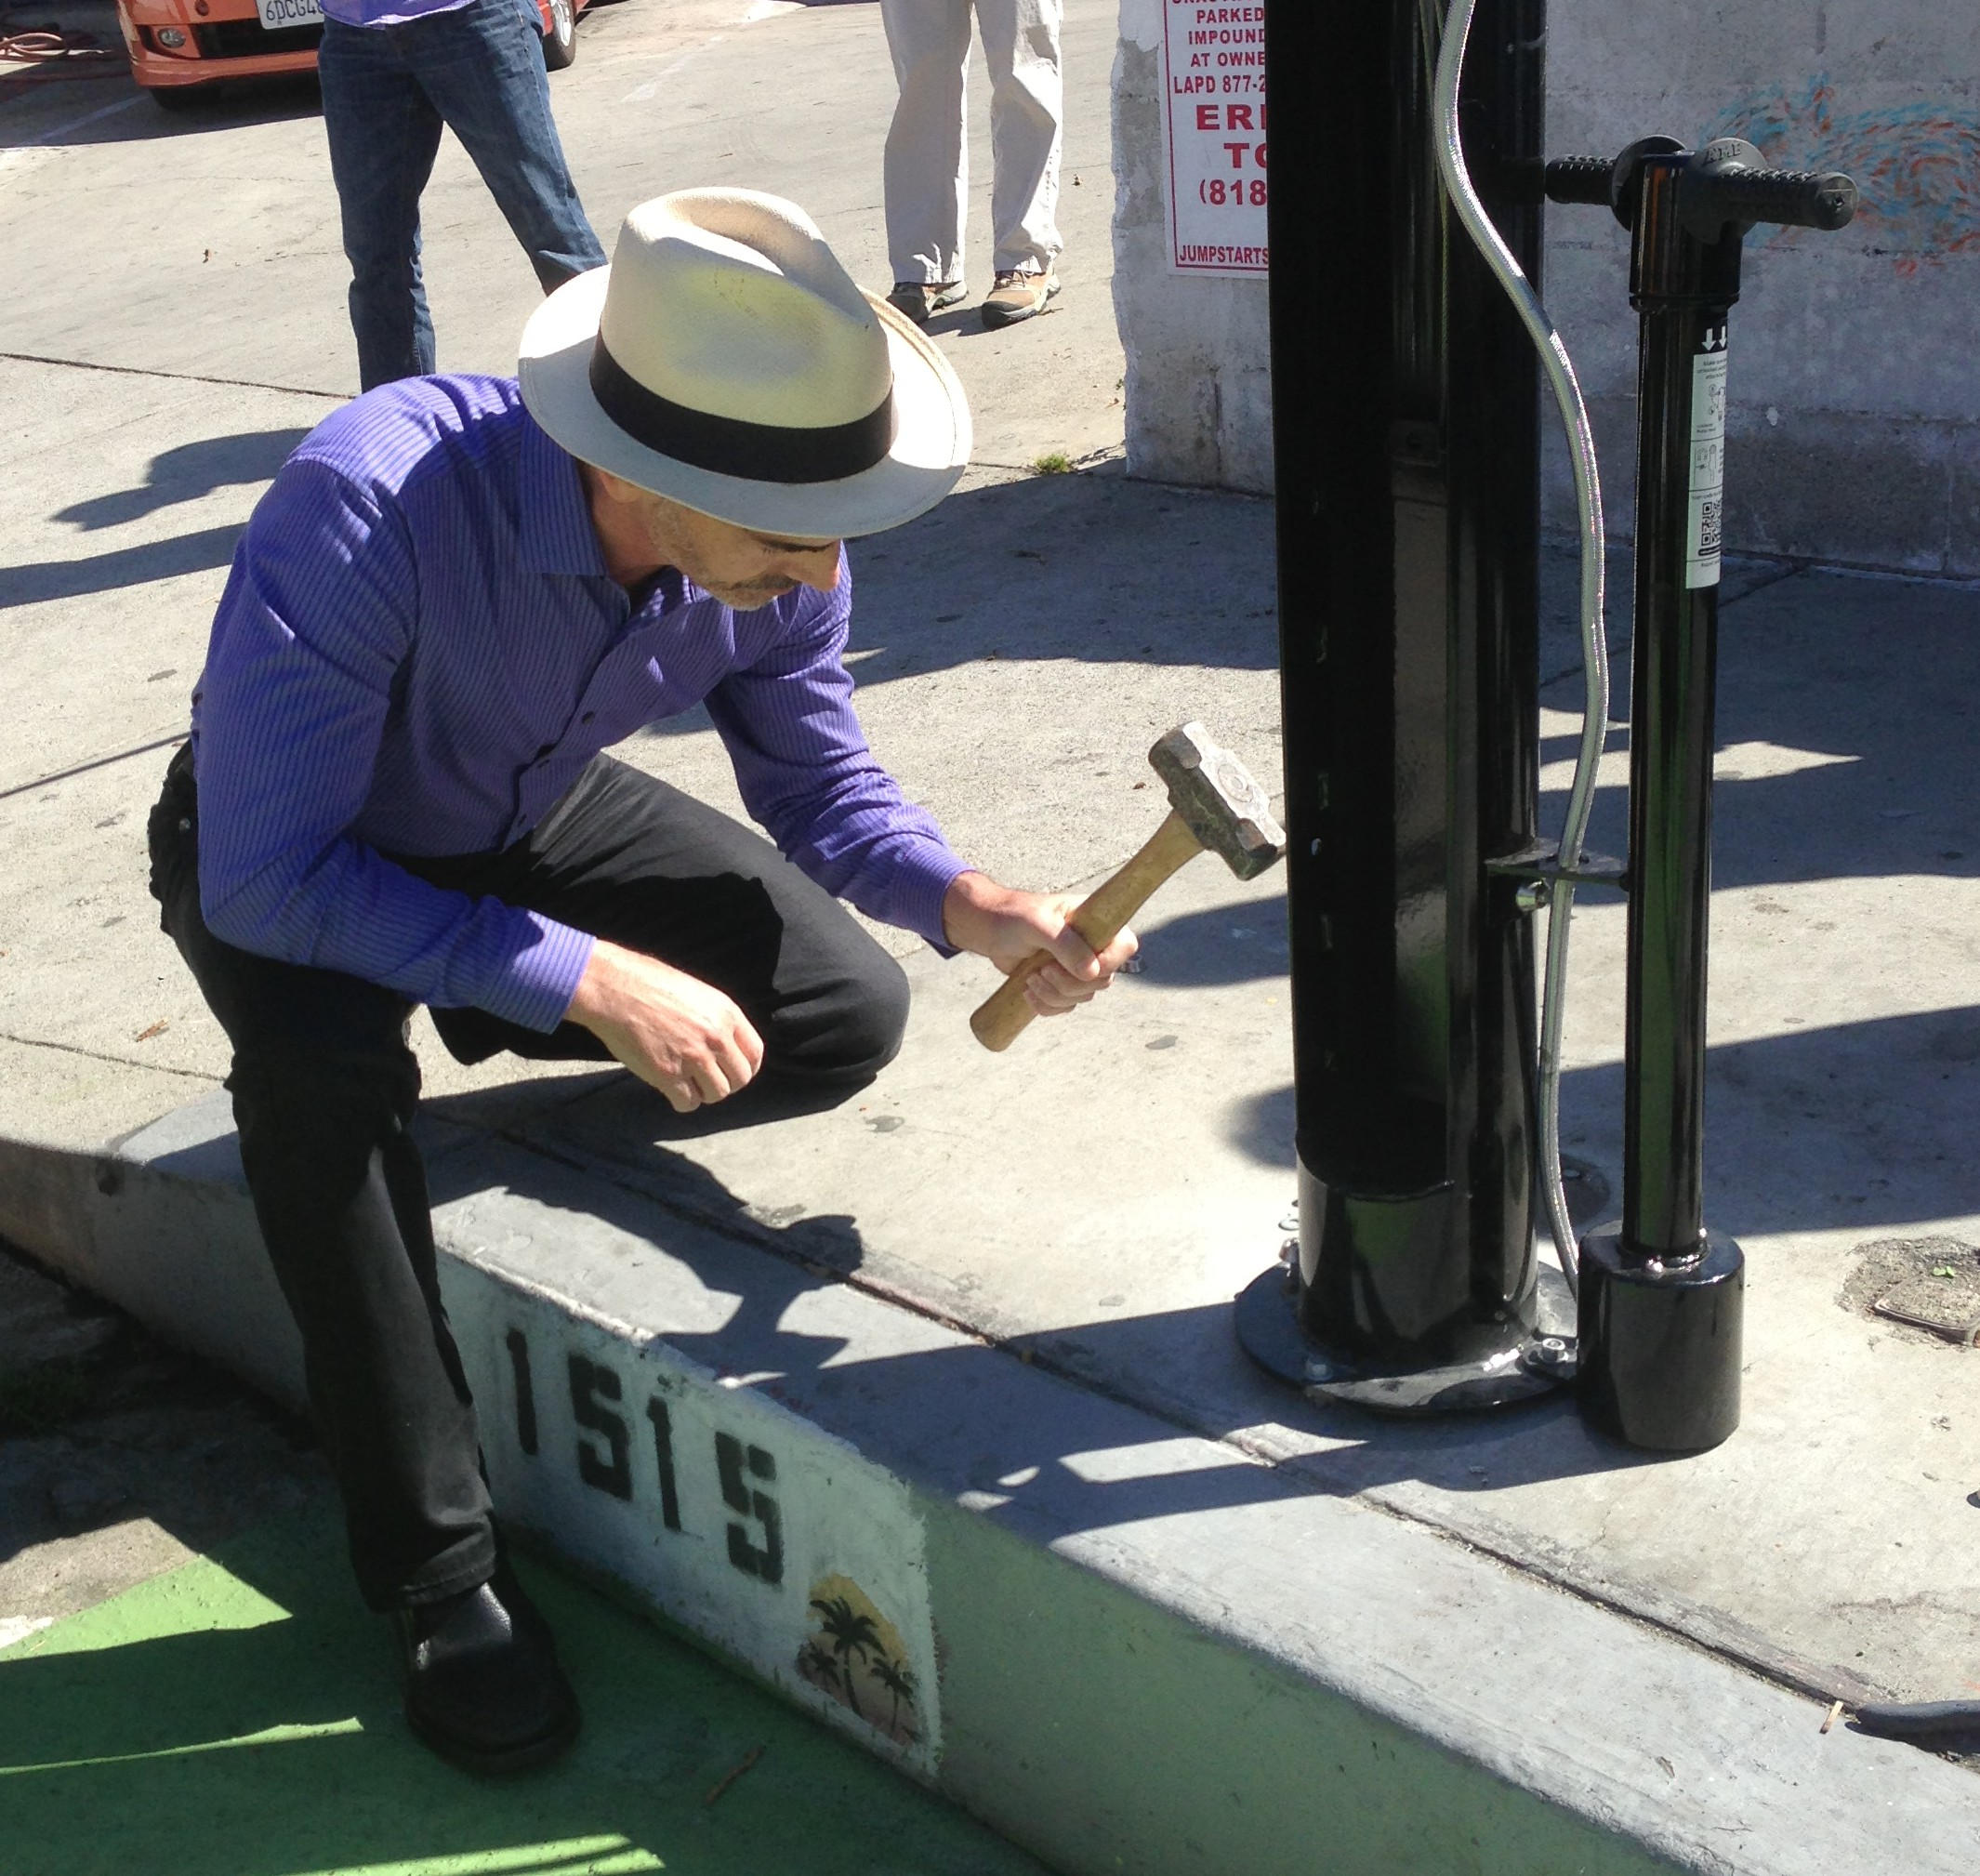 Councilmember Mitch O'Farrell hammers in the final pin to secure the new bike repair stand at Sunset Triangle Park Plaza